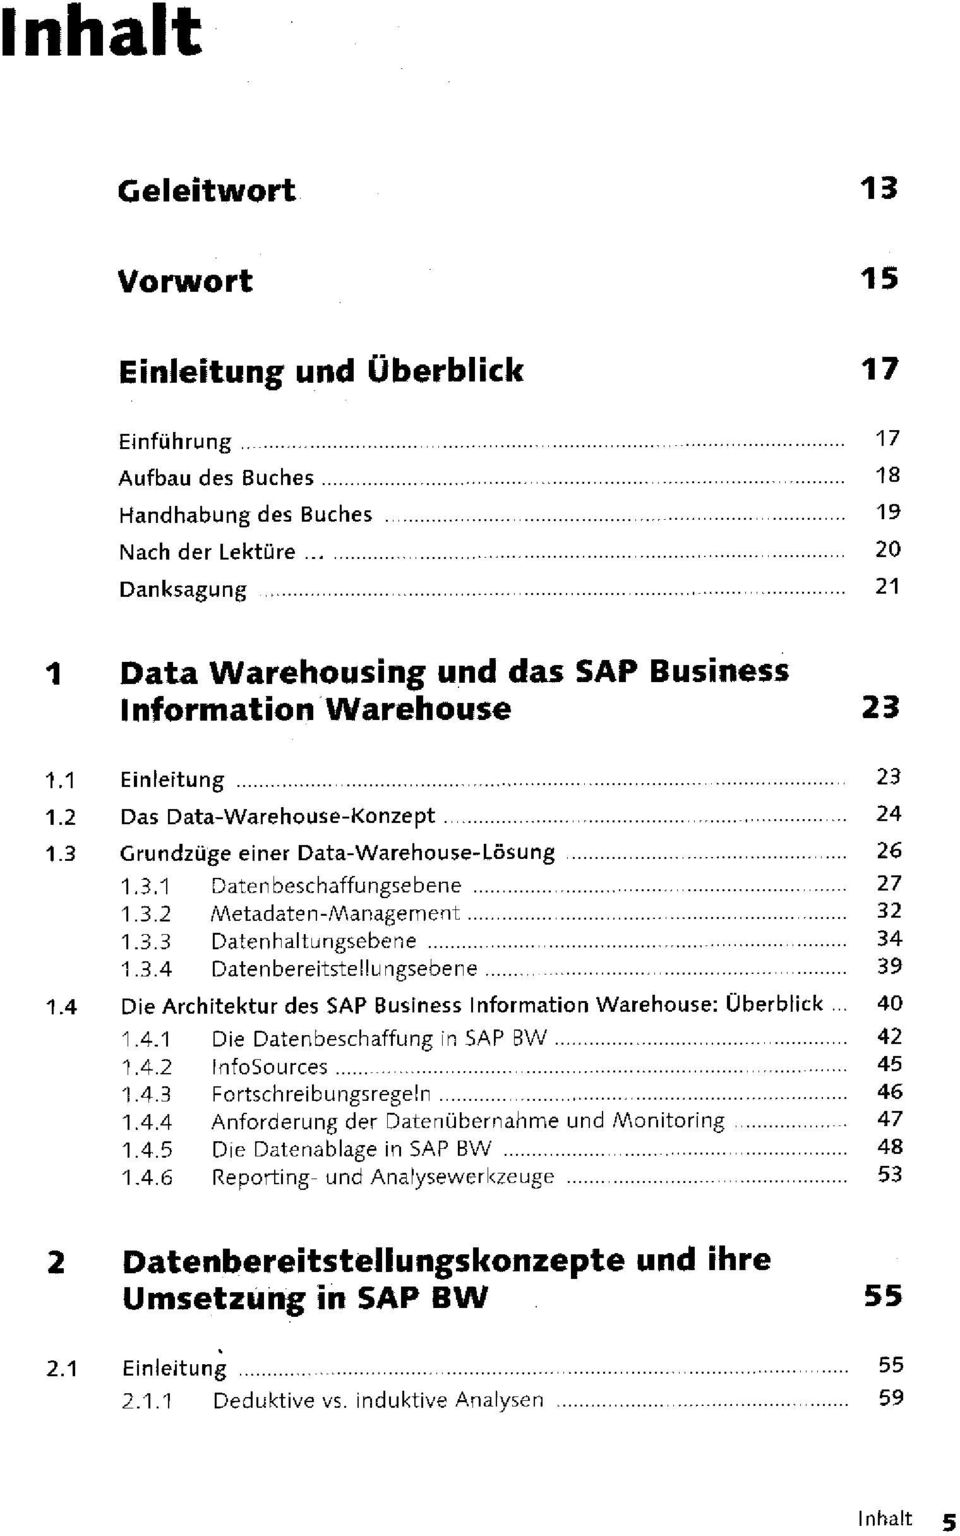 3.4 Datenbereitstellungsebene 39 1.4 Die Architektur des SAP Business Information Warehouse: Überblick... 40 1.4.1 Die Datenbeschaffung in SAP BW 42 1.4.2 InfoSources 45 1.4.3 Fortschreibungsregeln 46 1.